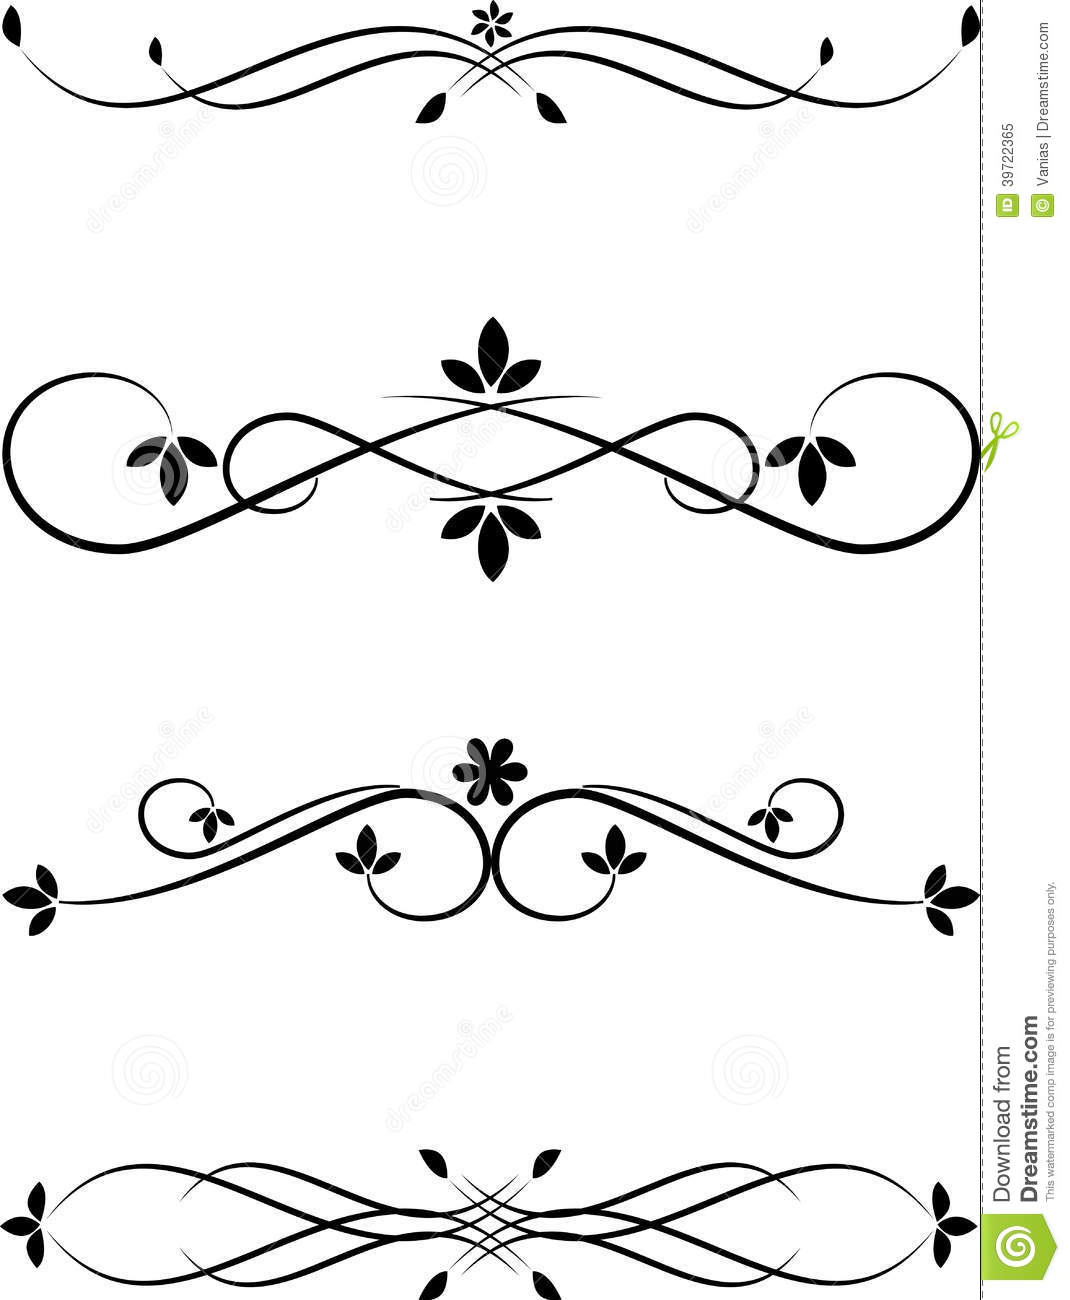 Pin Calligraphic Frame Border Designs In Various Shapes